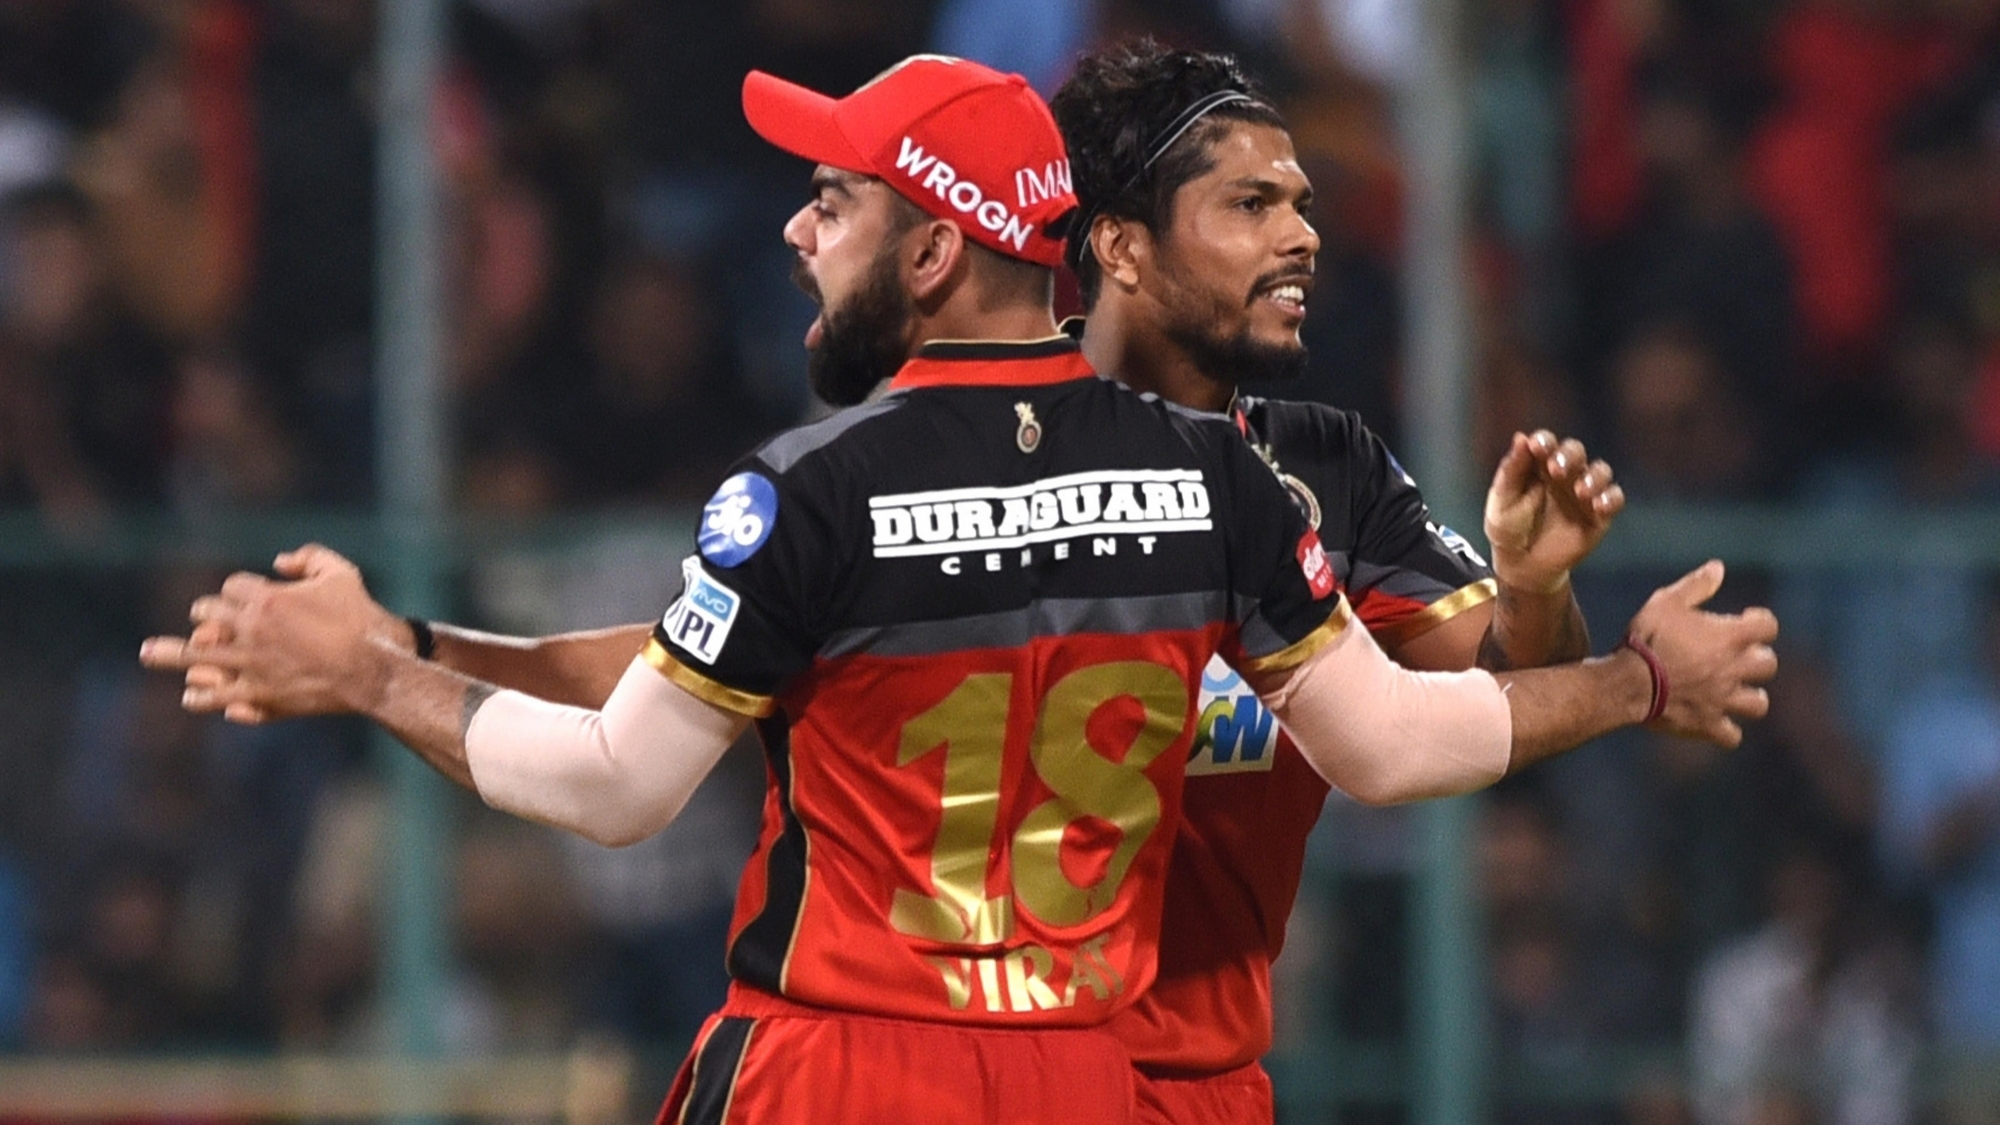 IPL 2018: Twitterverse went berserk as RCB bundled out KXIP for 88